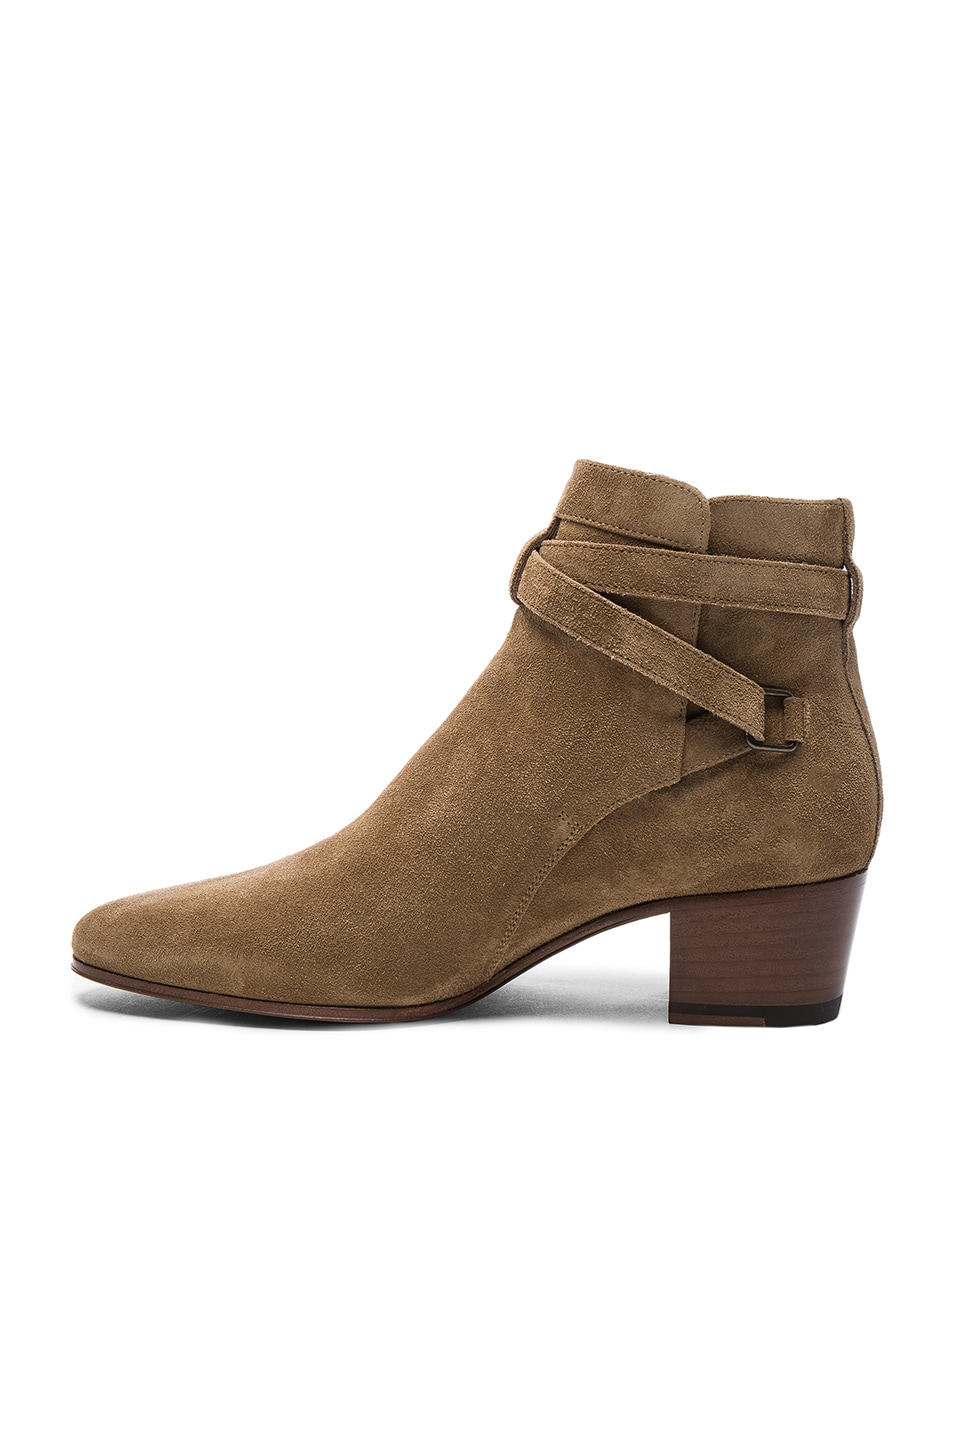 Image 5 of Saint Laurent Suede Blake Boots in Light Cigare